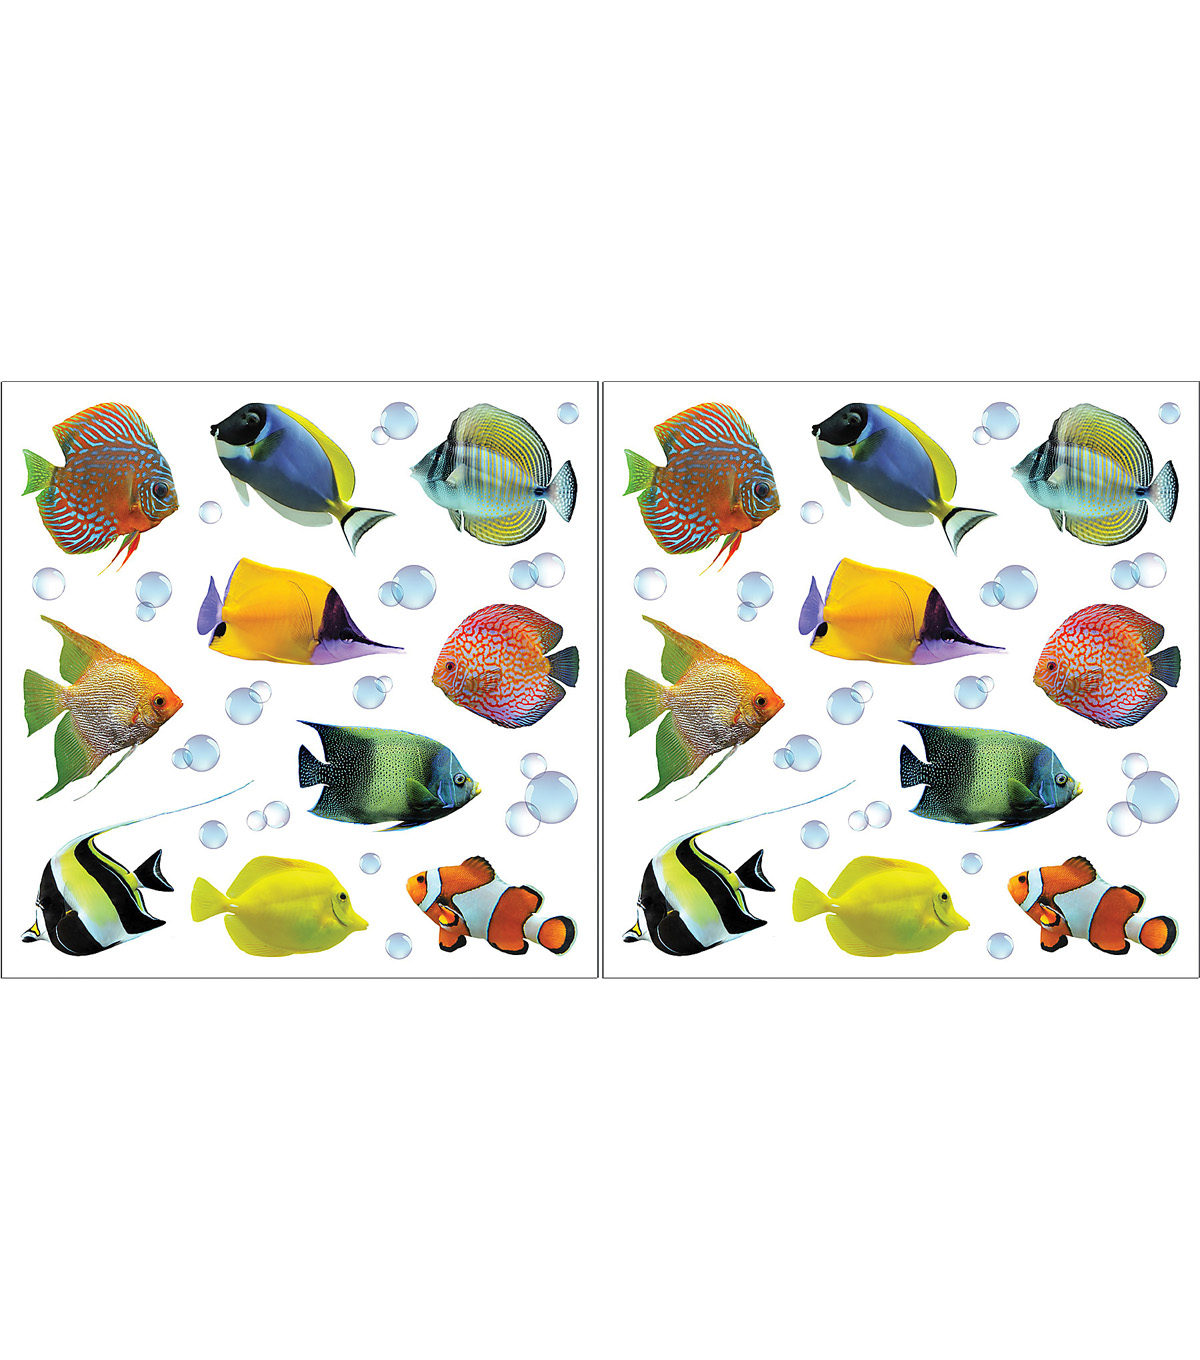 Home Decor Fish Wall Stickers, 24 Piece Set